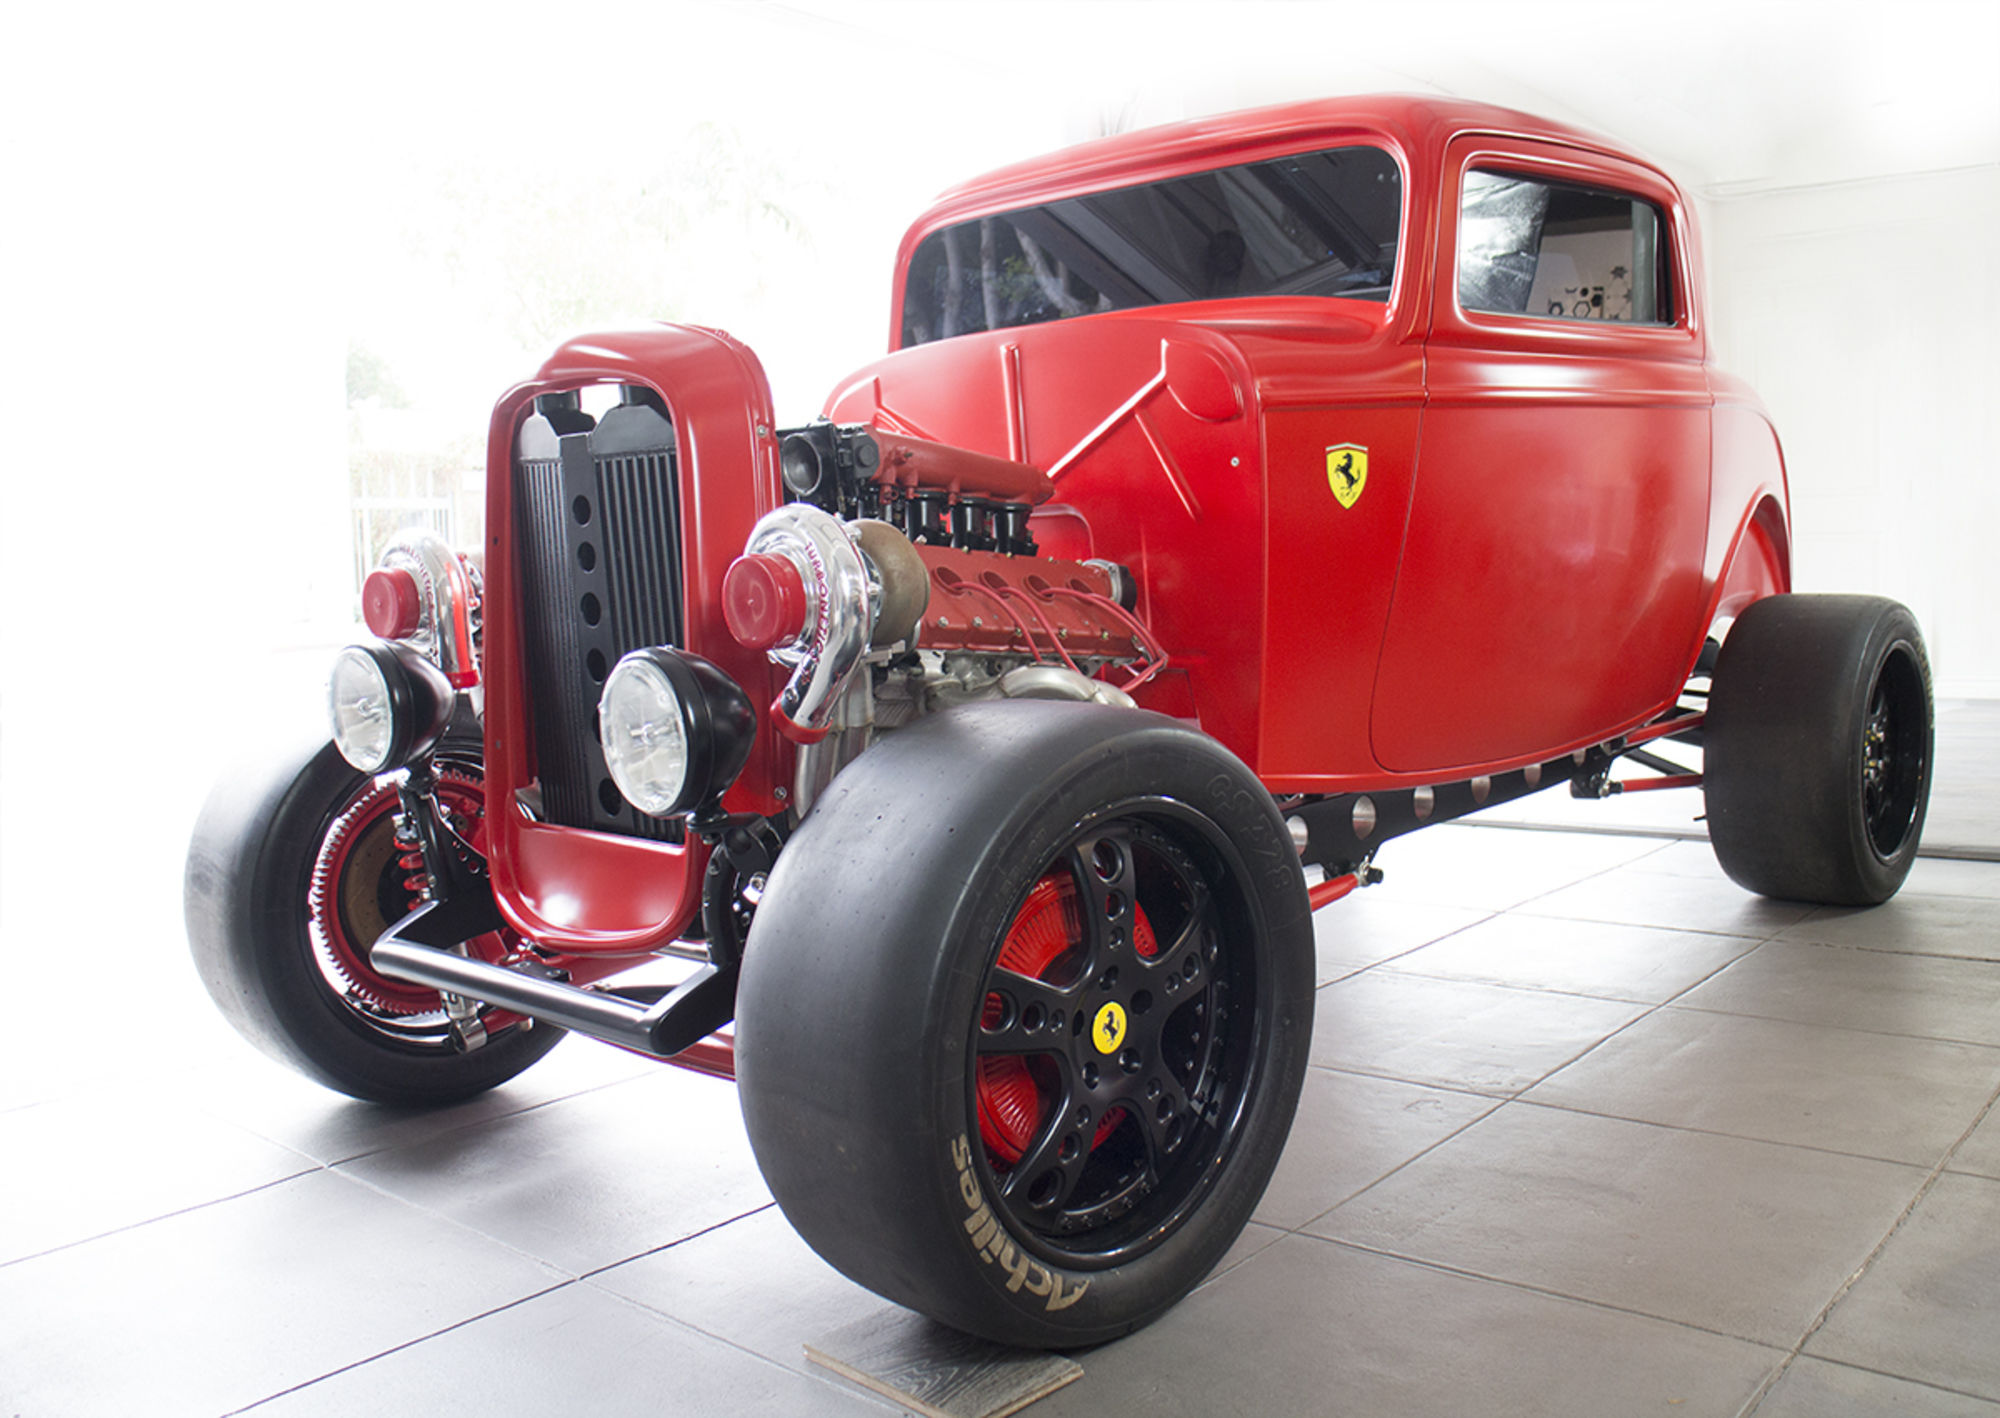 $250,000 For An Unfinished Ferrari Powered Fiberglass 1932 Ford? I Don't Think So. Check This Out.